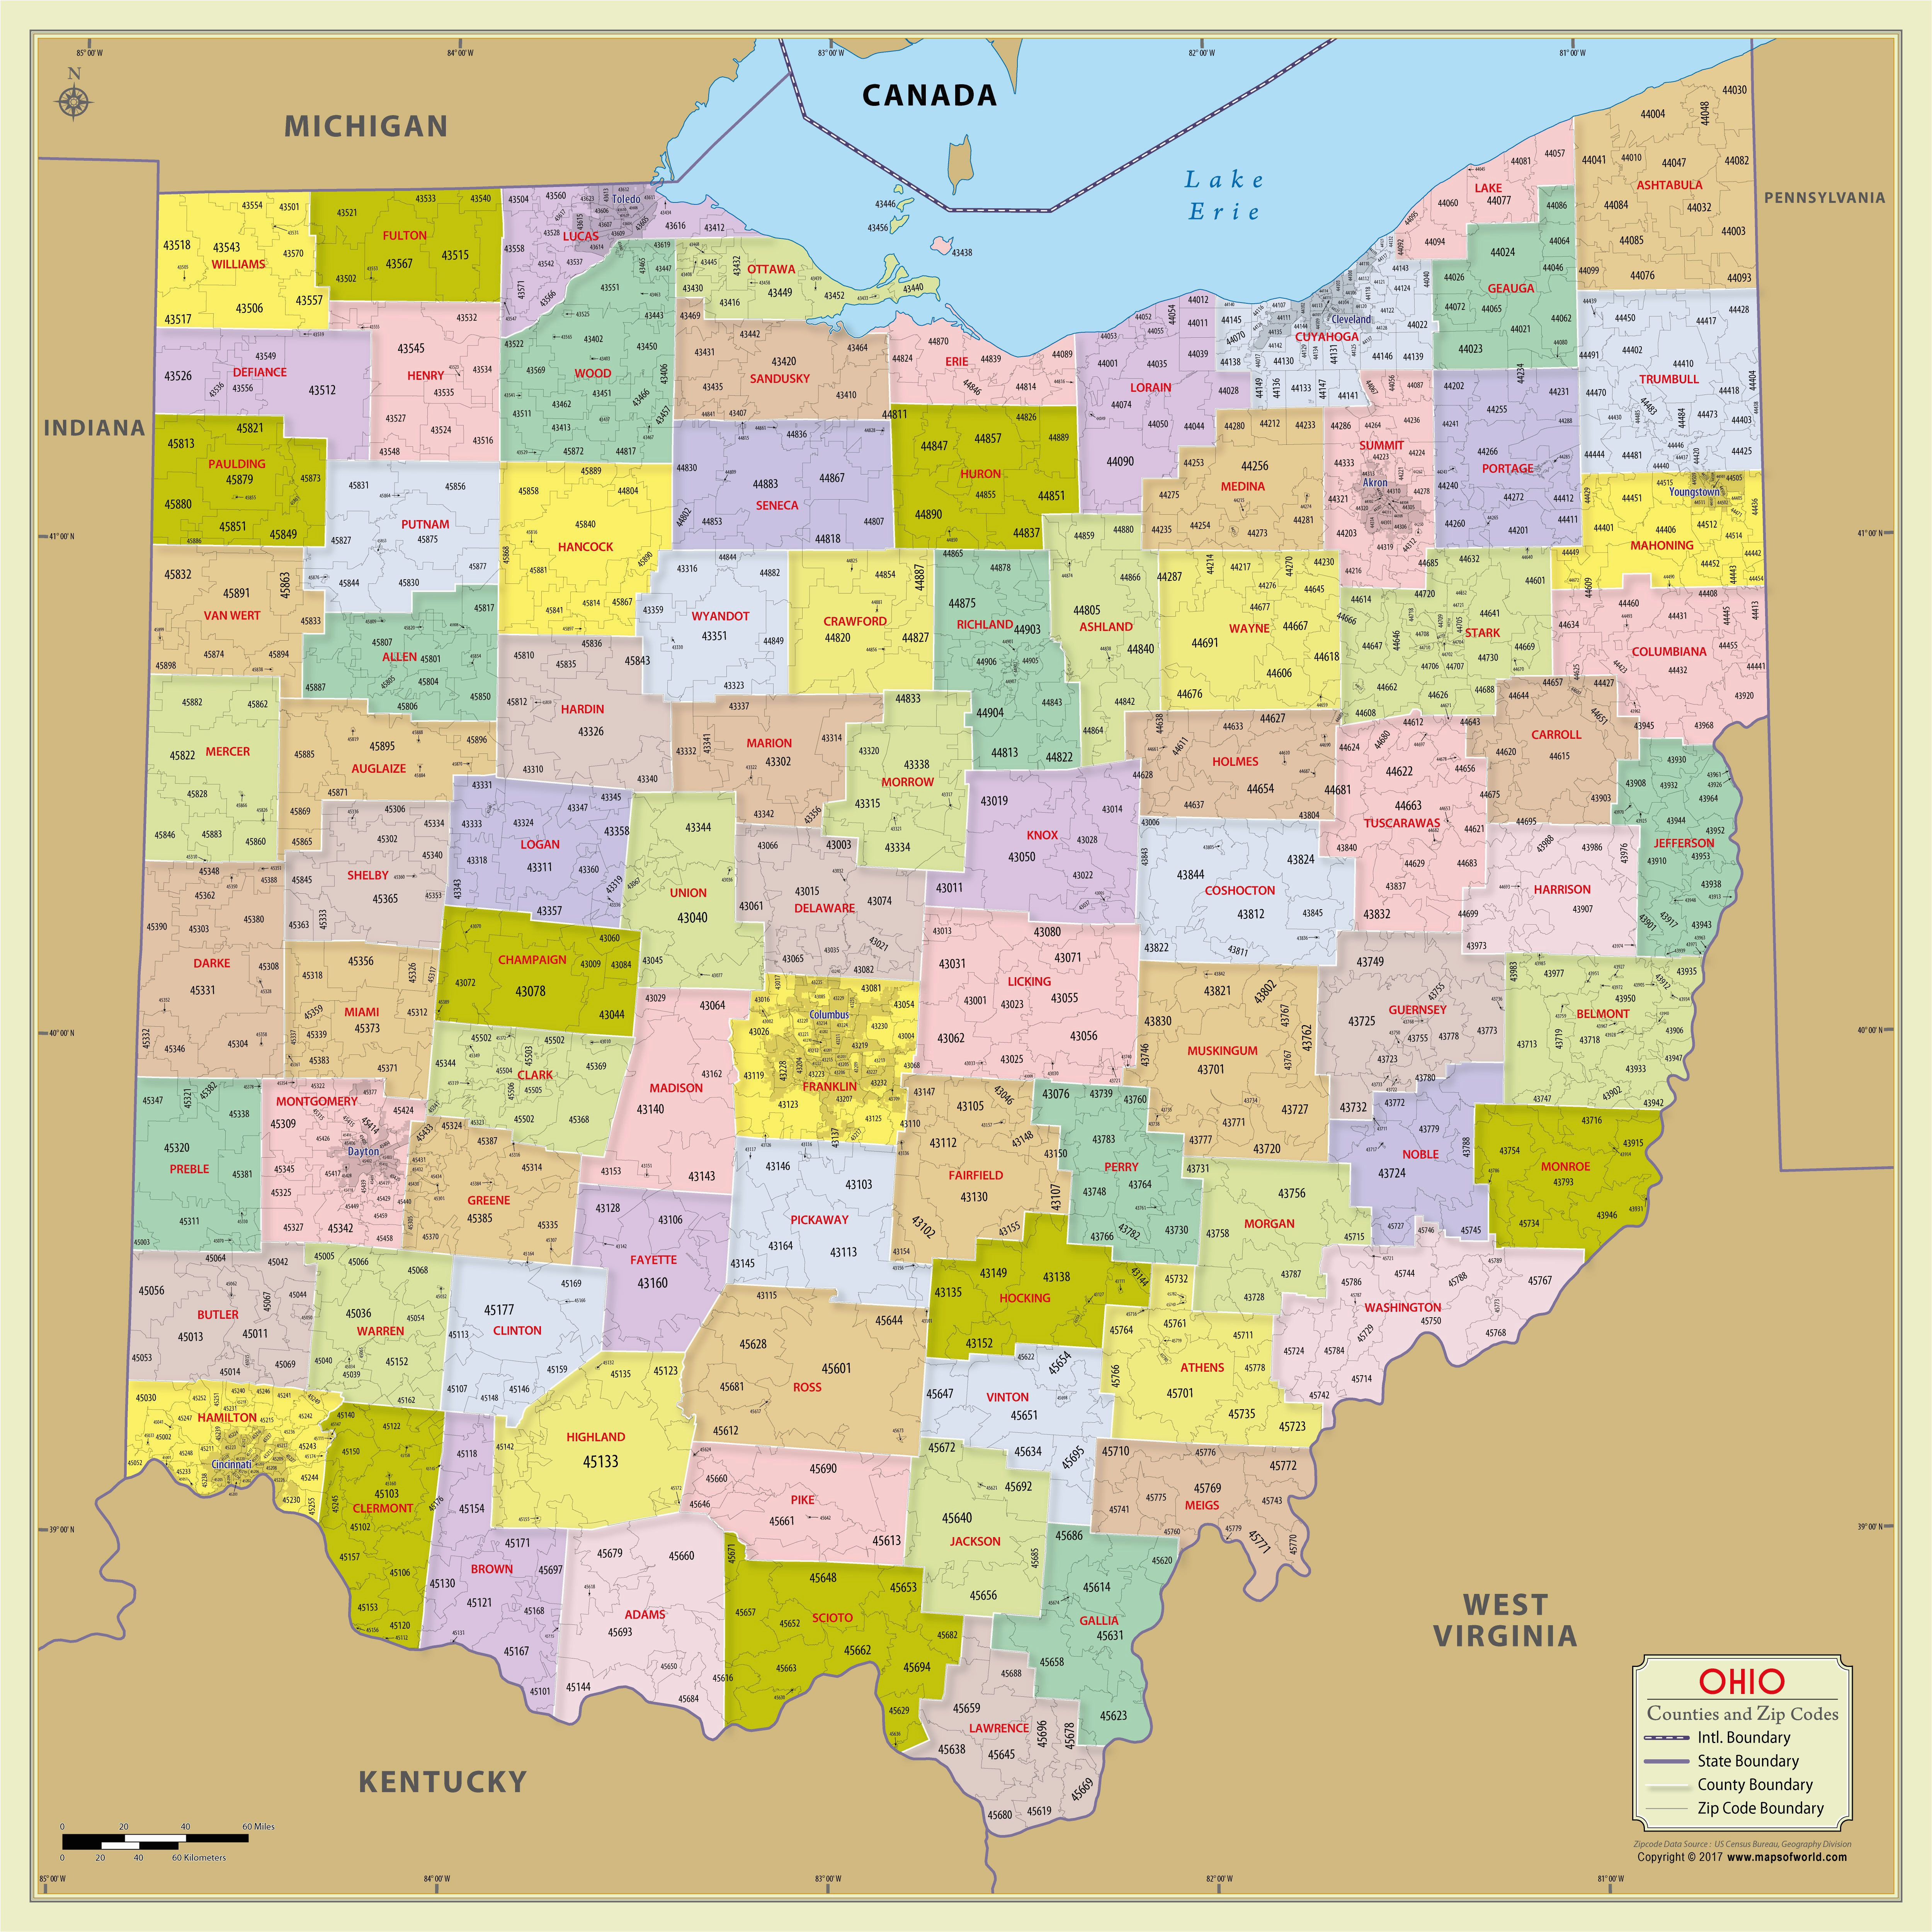 southern indiana county map fresh ohio county map printable map city